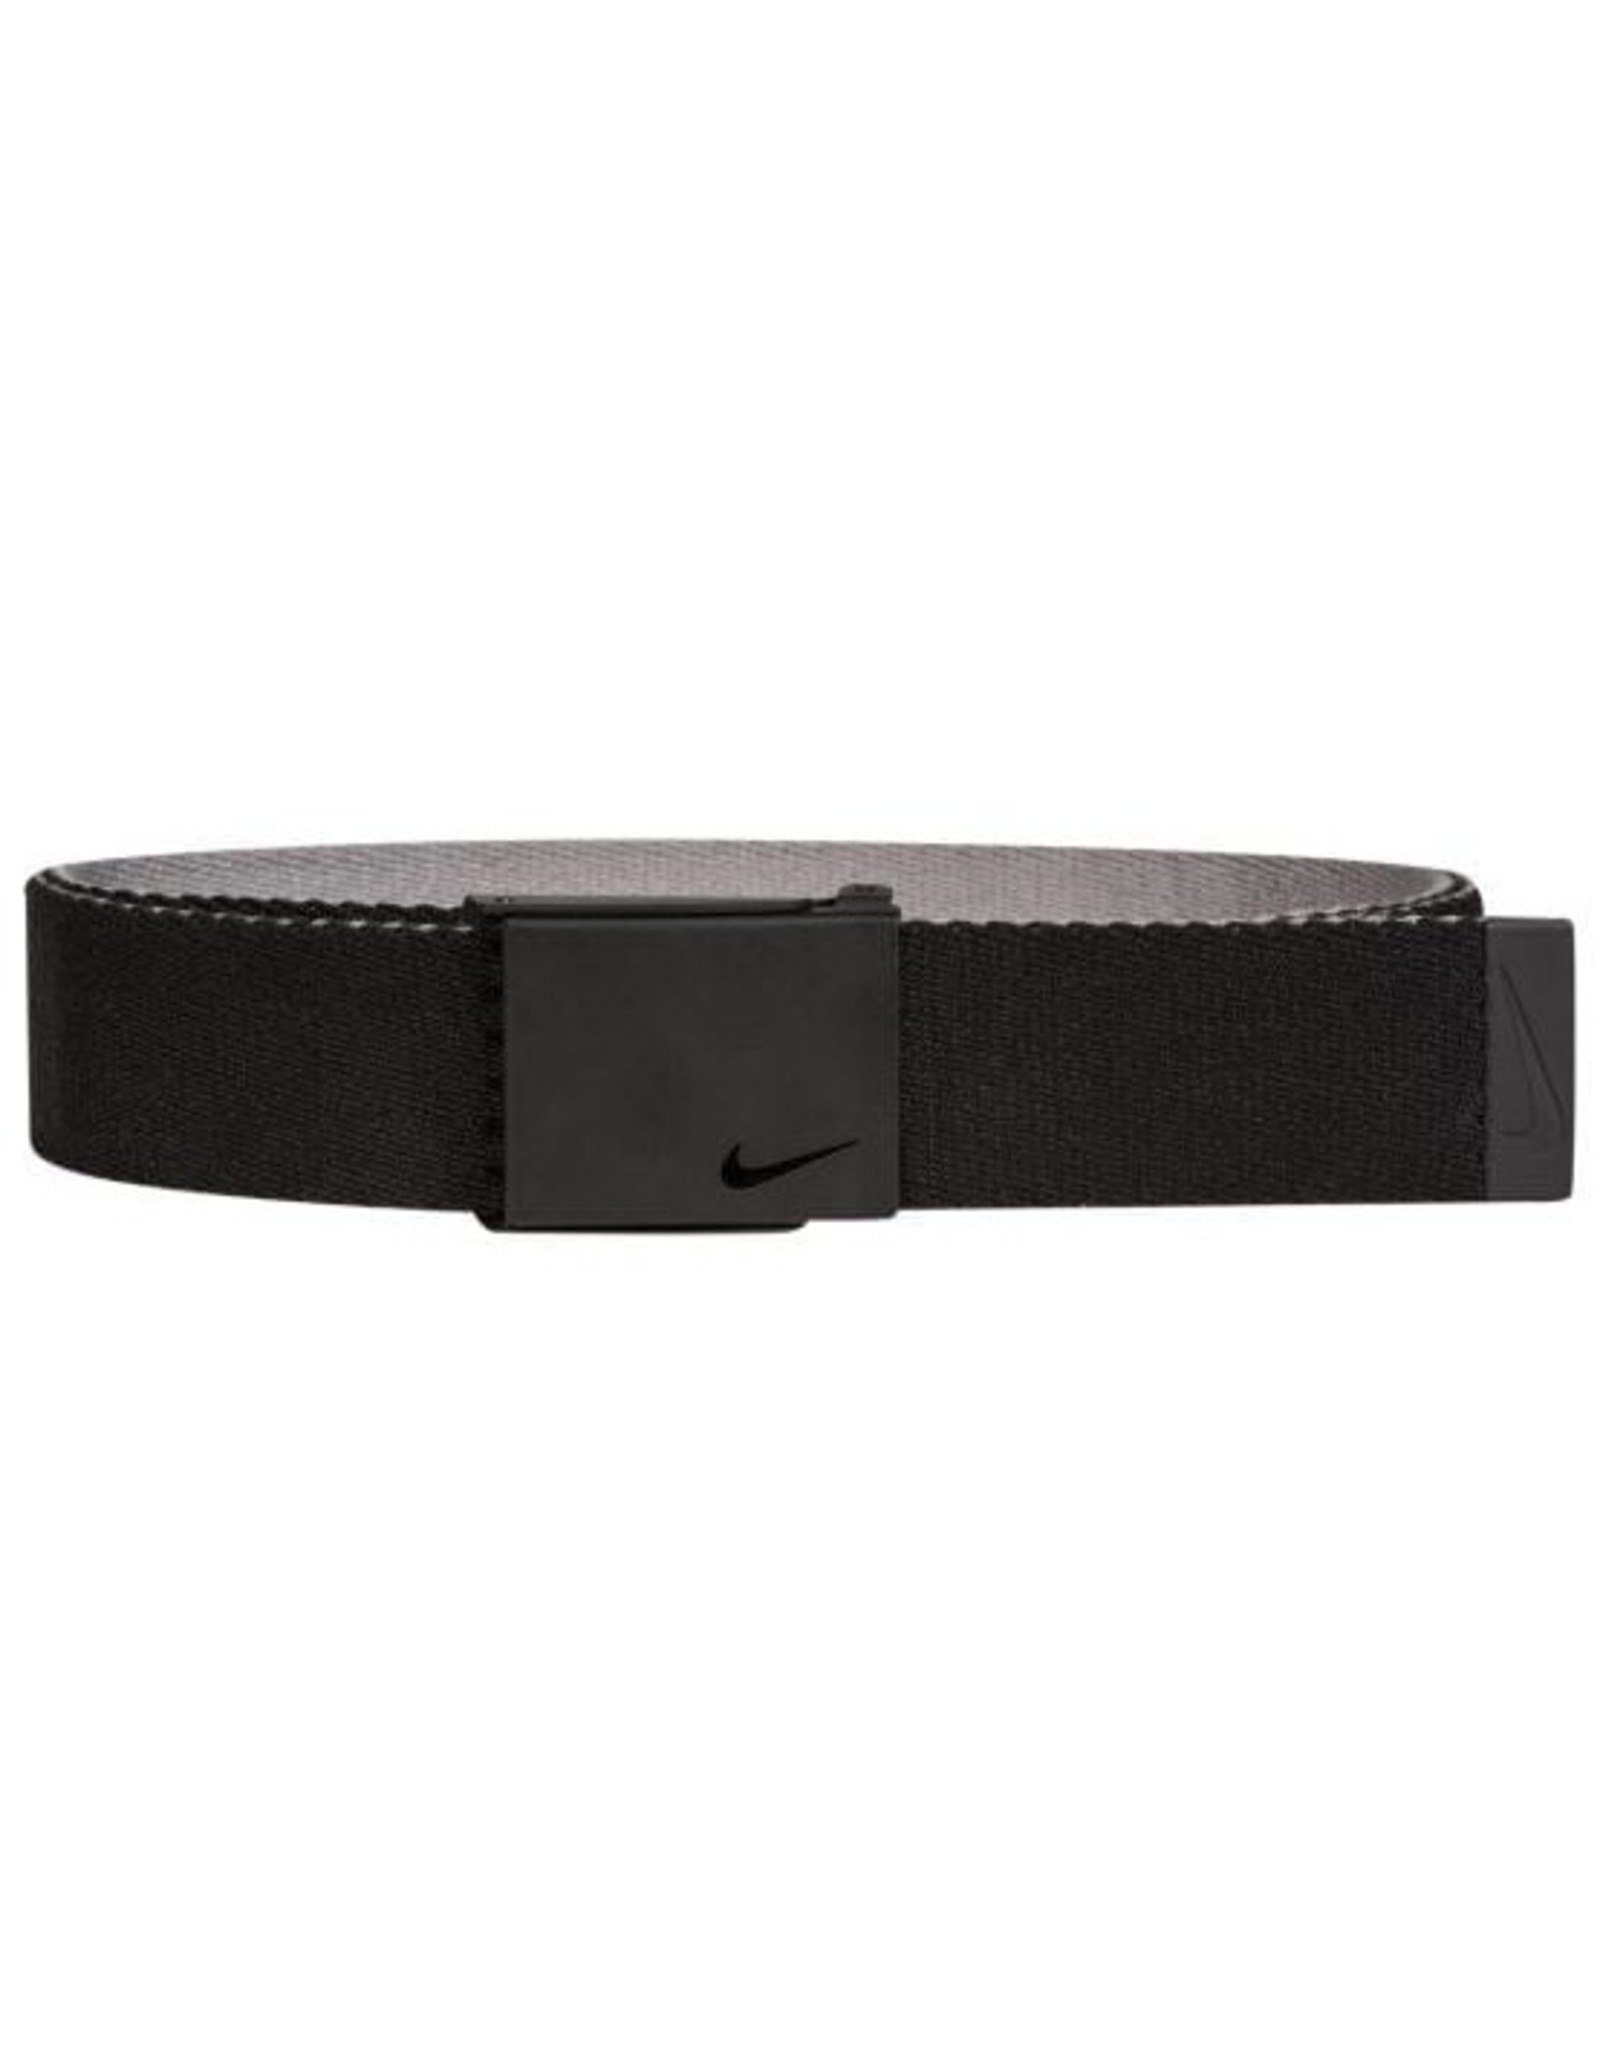 UNIFORM Nike Classic Essentials Web Golf Belt